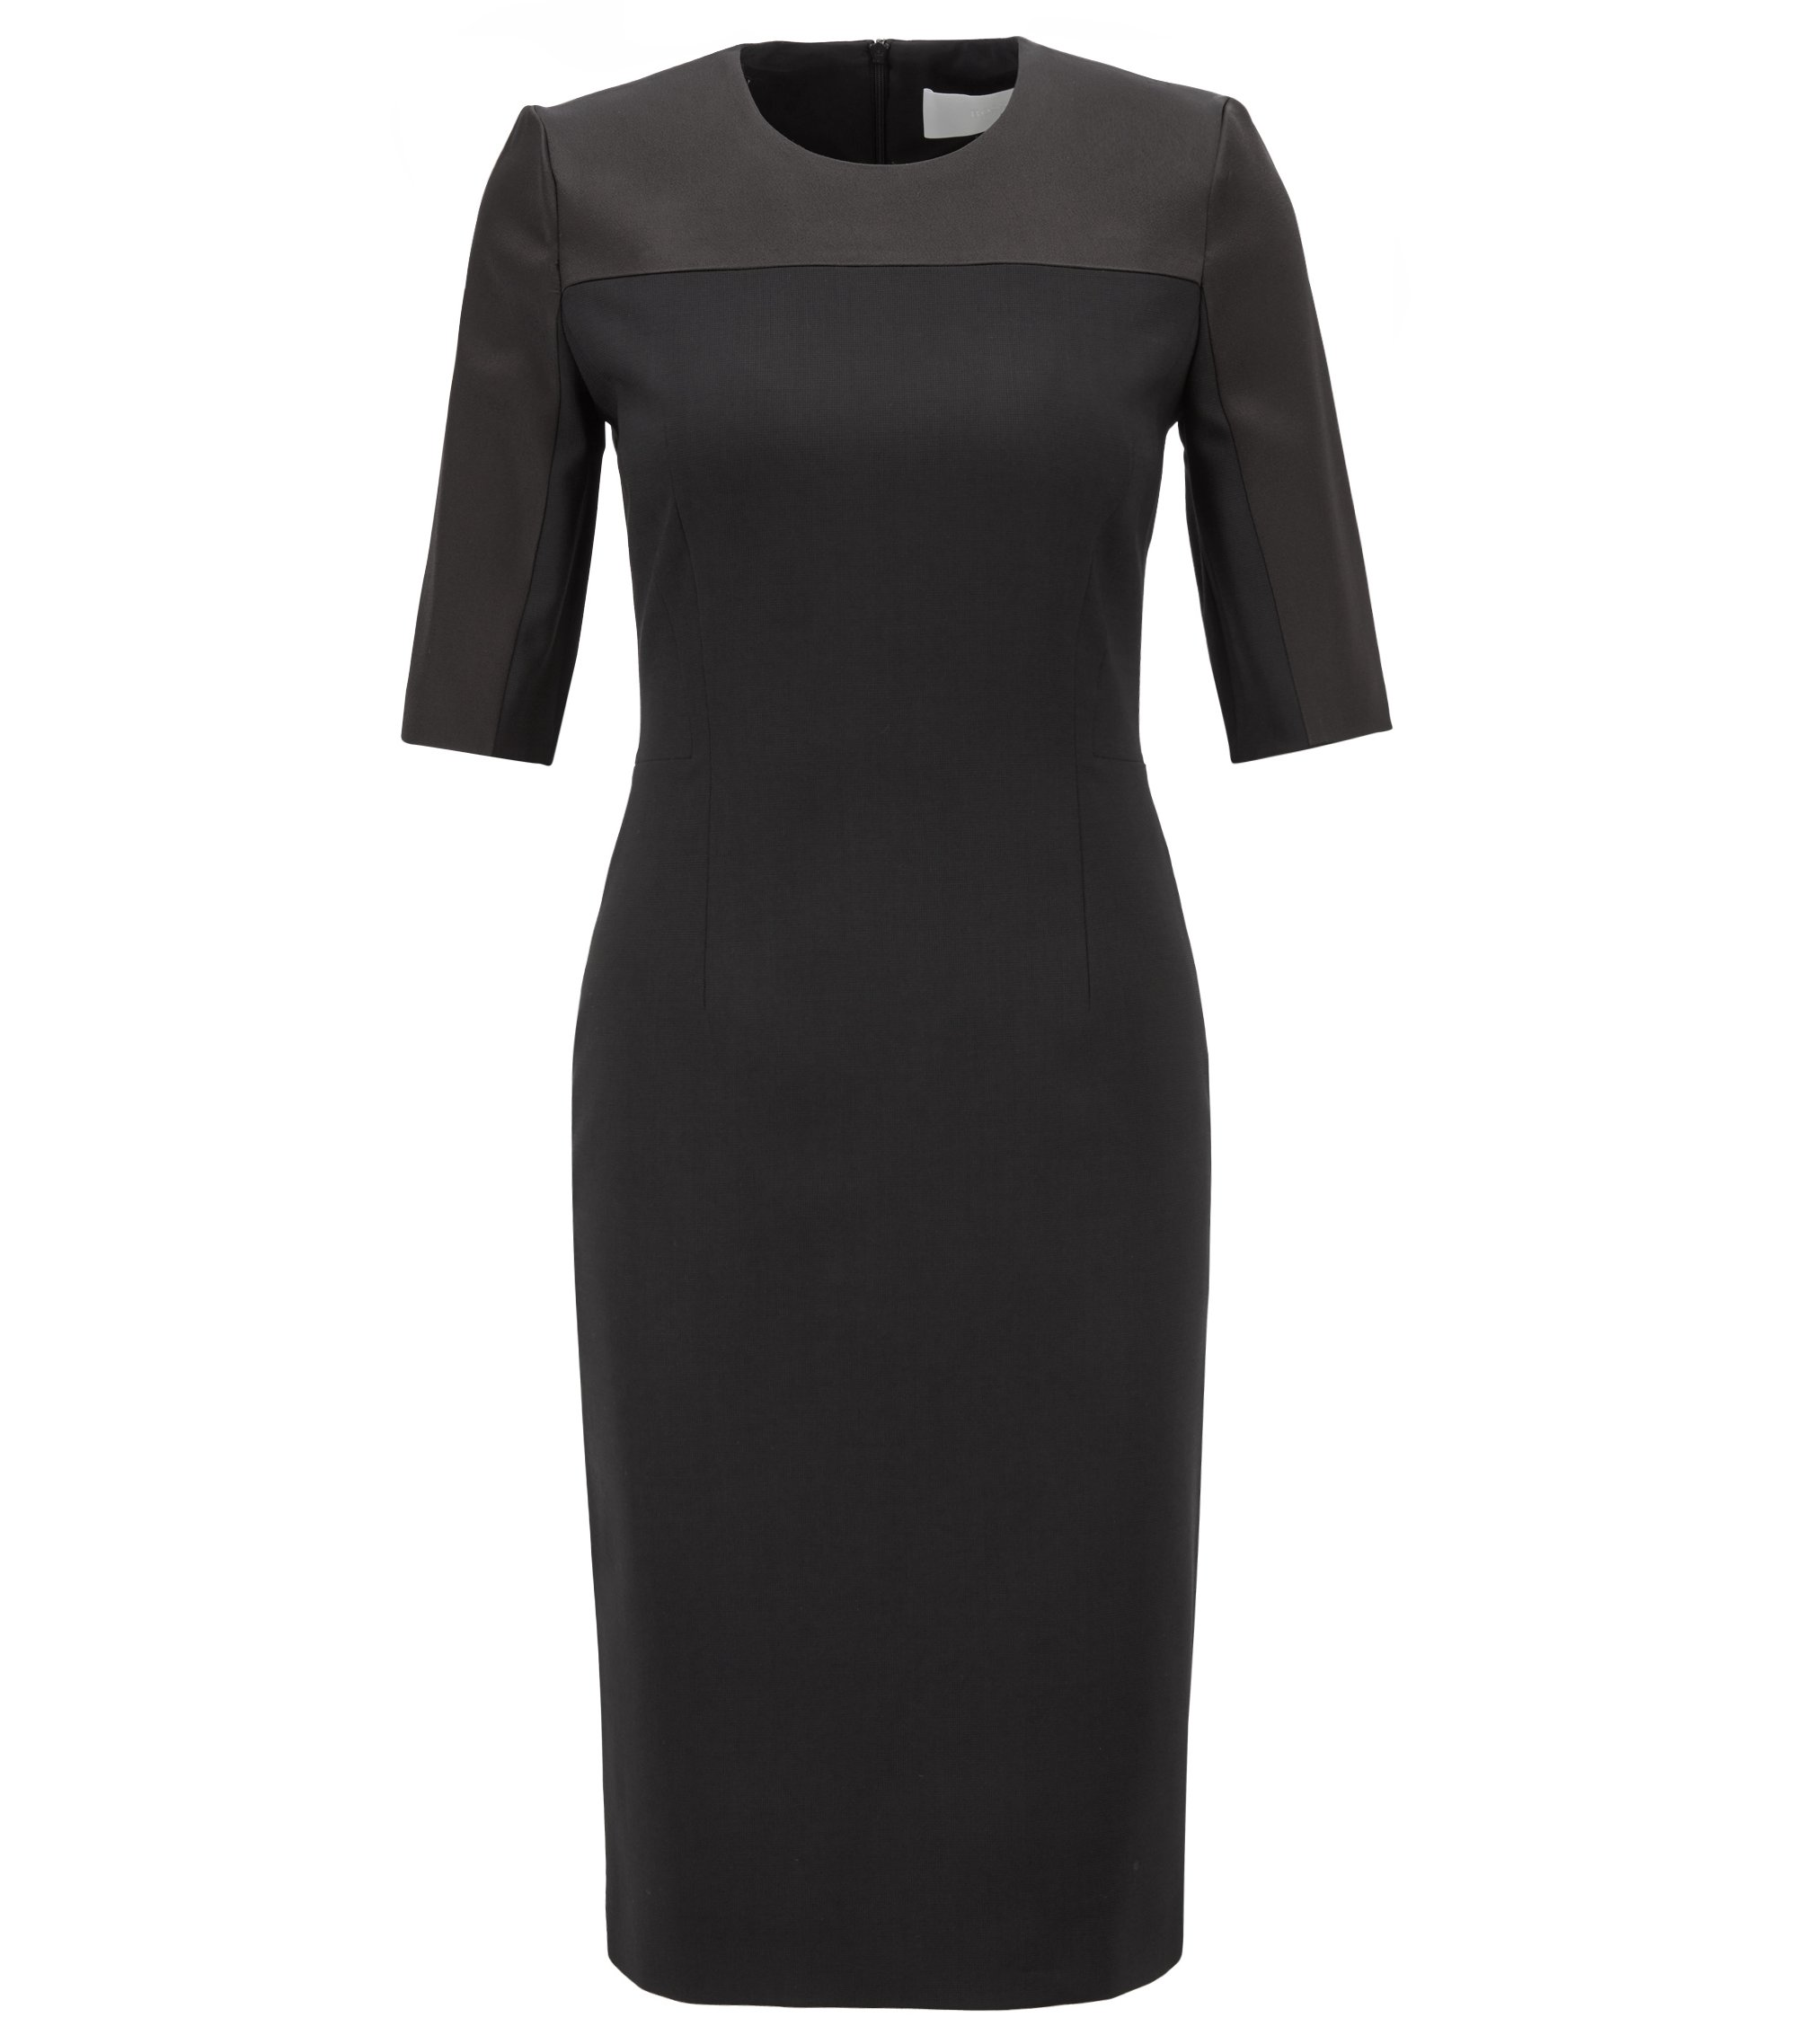 Cropped-sleeved dress in stretch virgin wool, Black